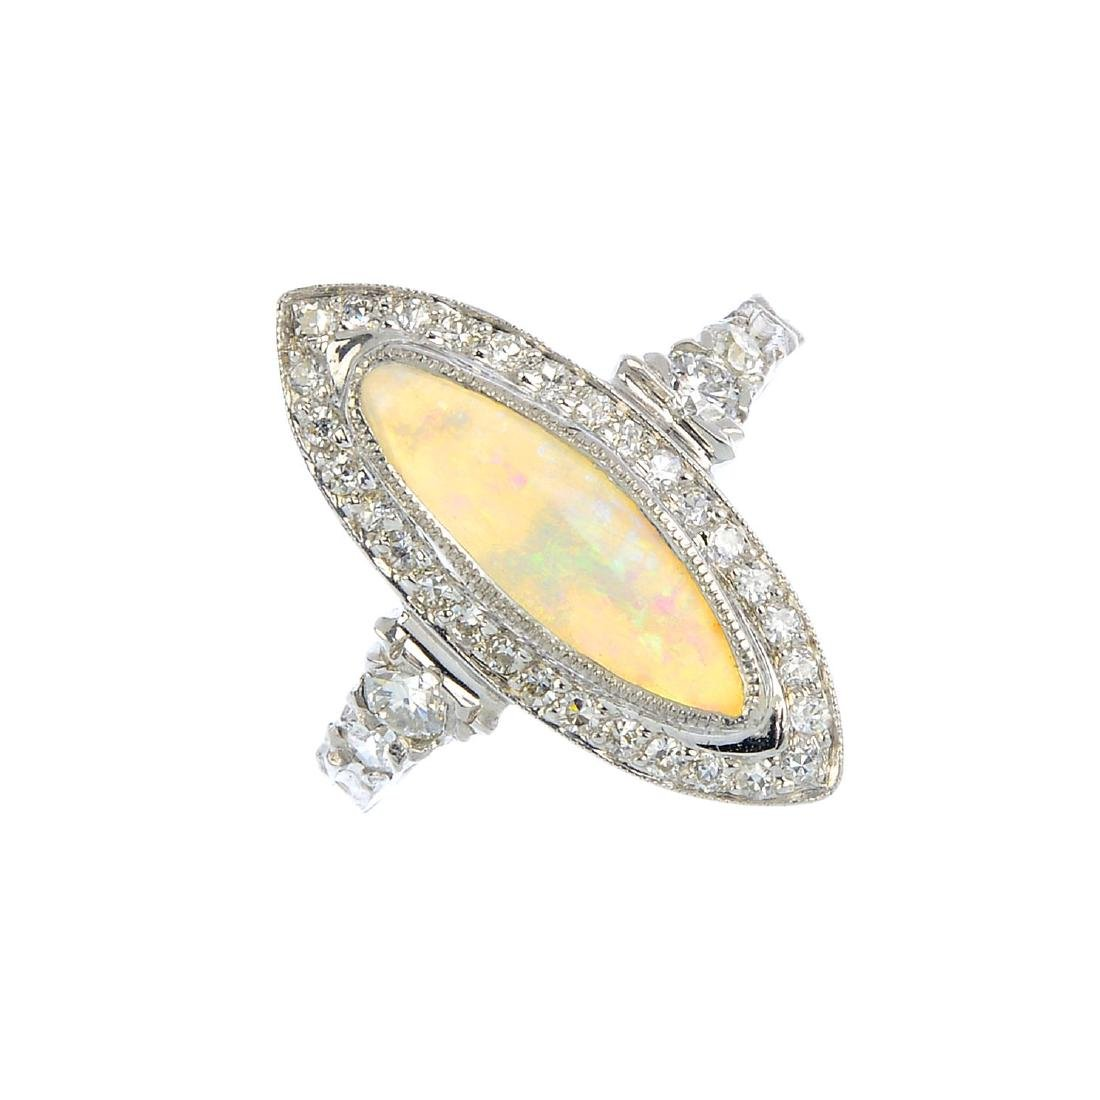 An opal and diamond cluster ring. The marquise opal